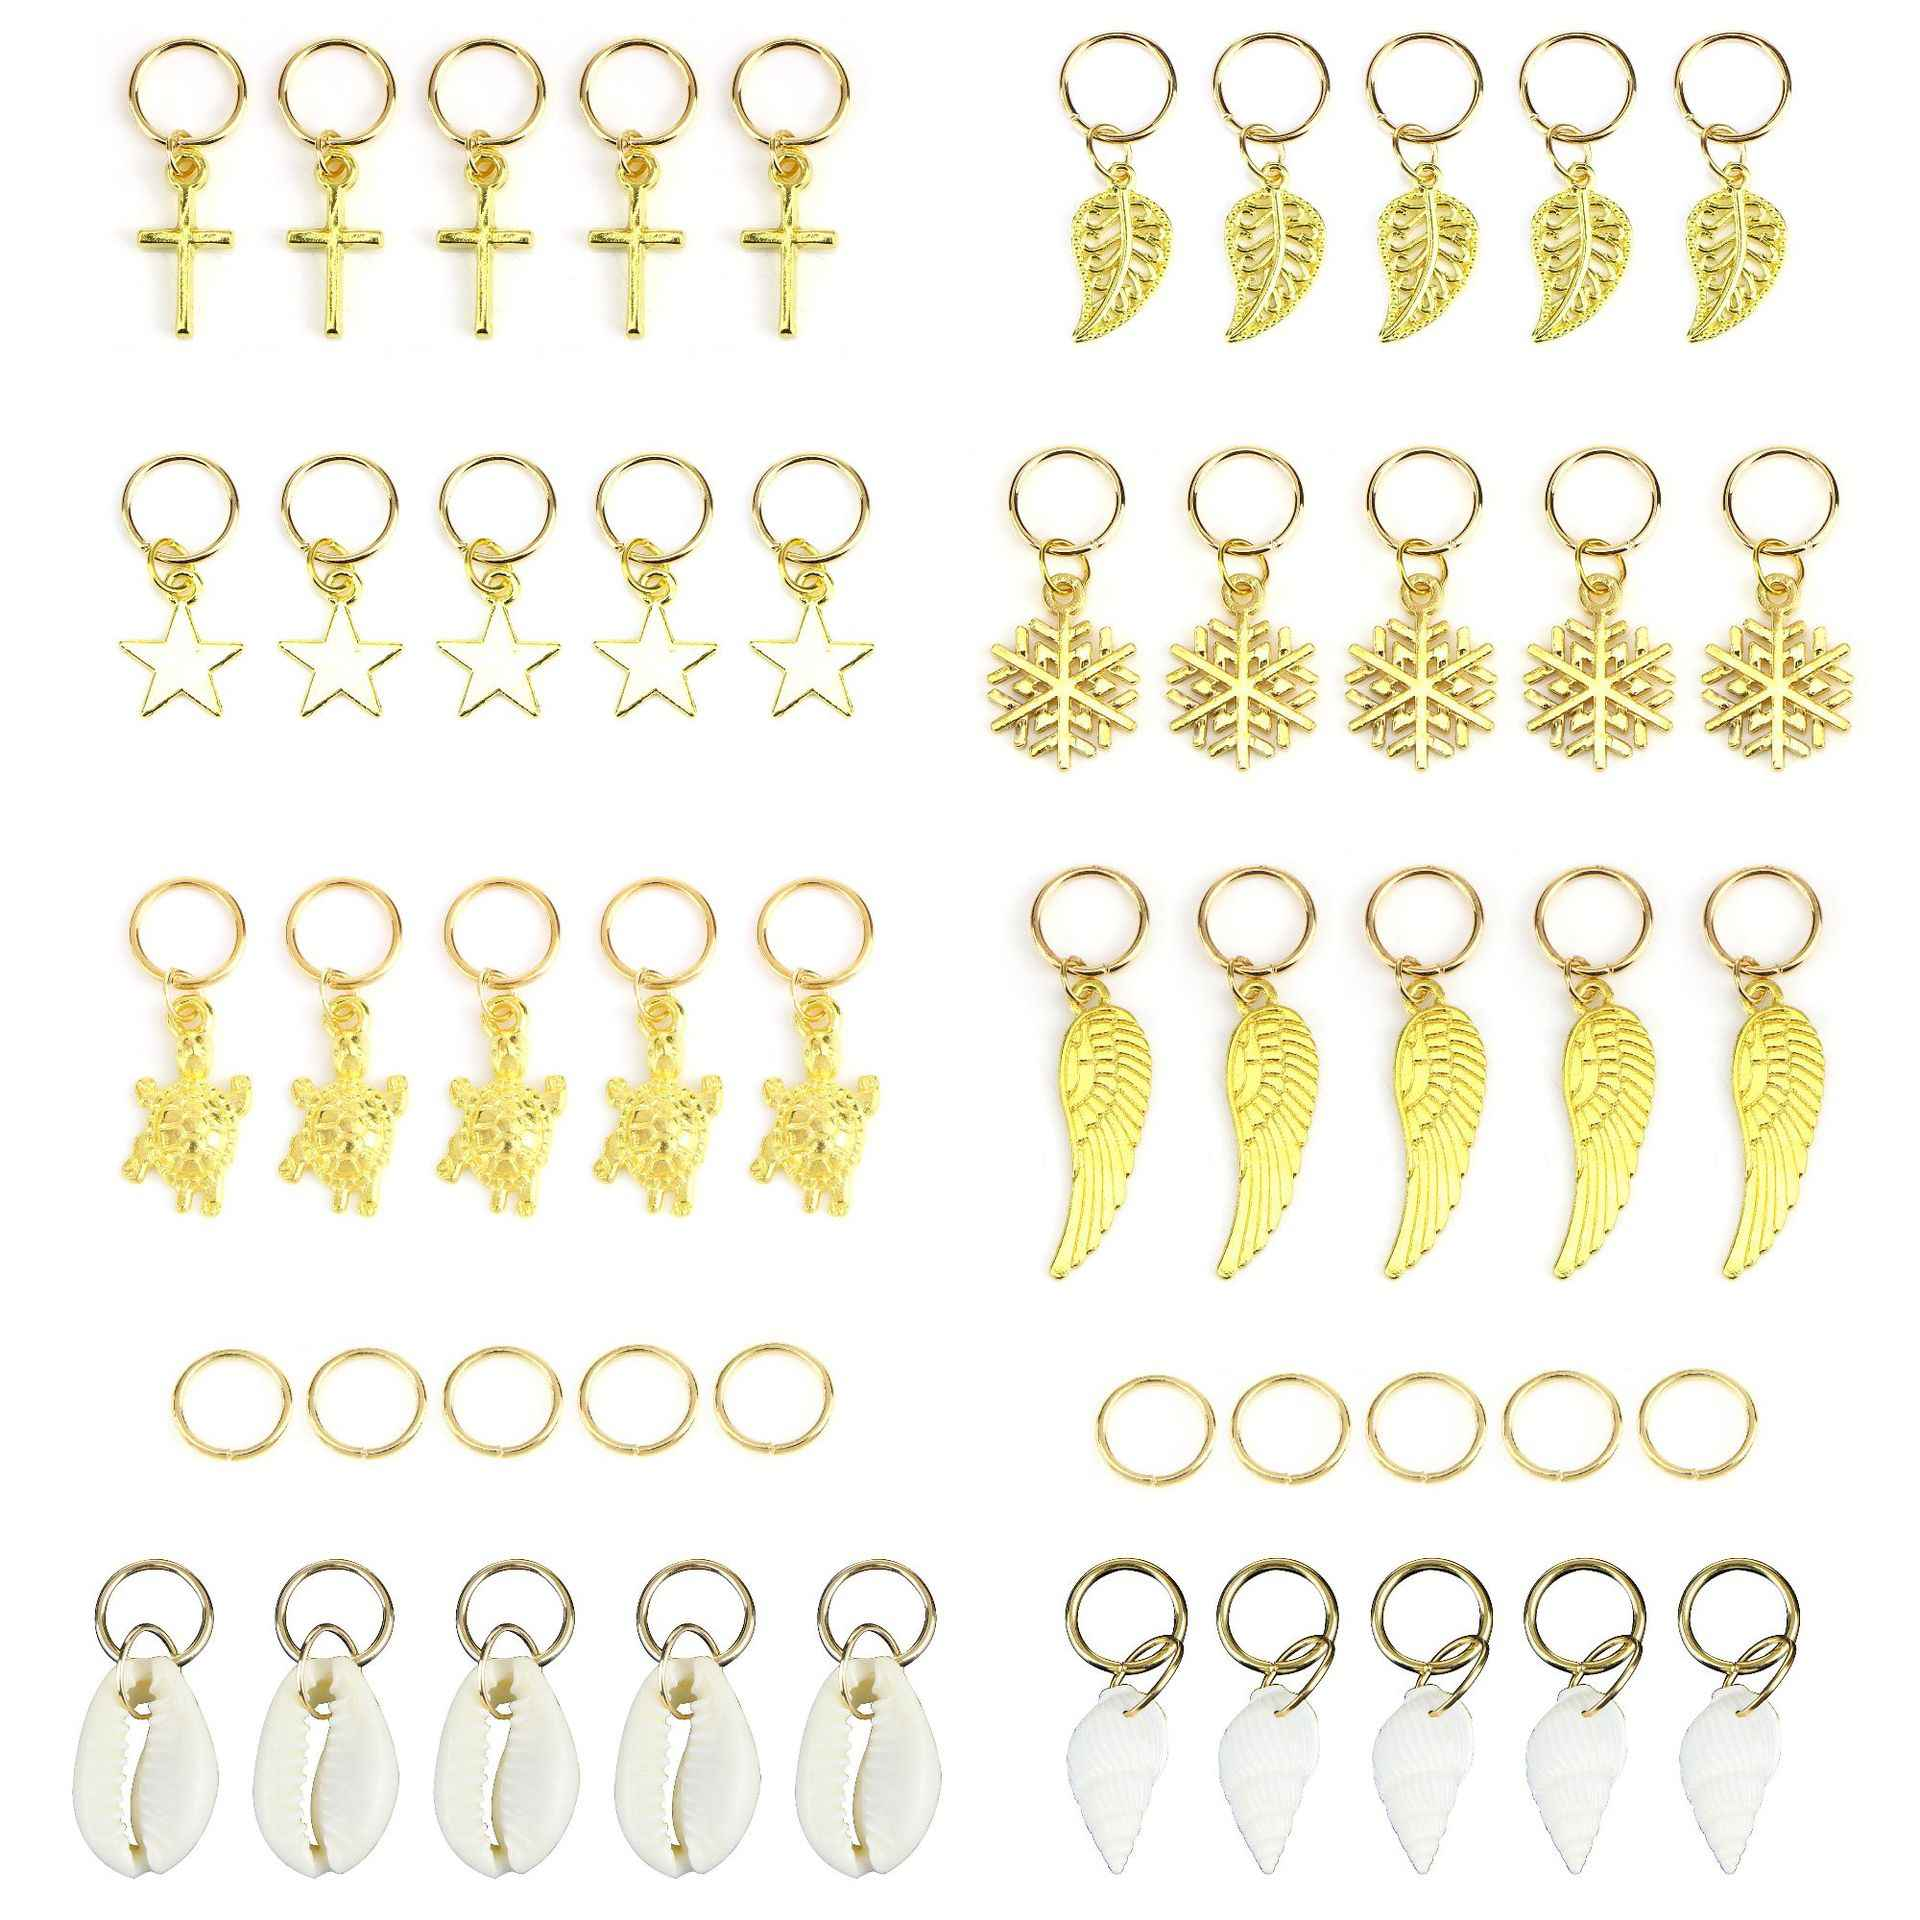 50Pcs/bag Gold Silver Hair Ring Braid Dreadlocks Bead Hair Cuffs Dread Tube Charm Dreadlock Accessaries Extension